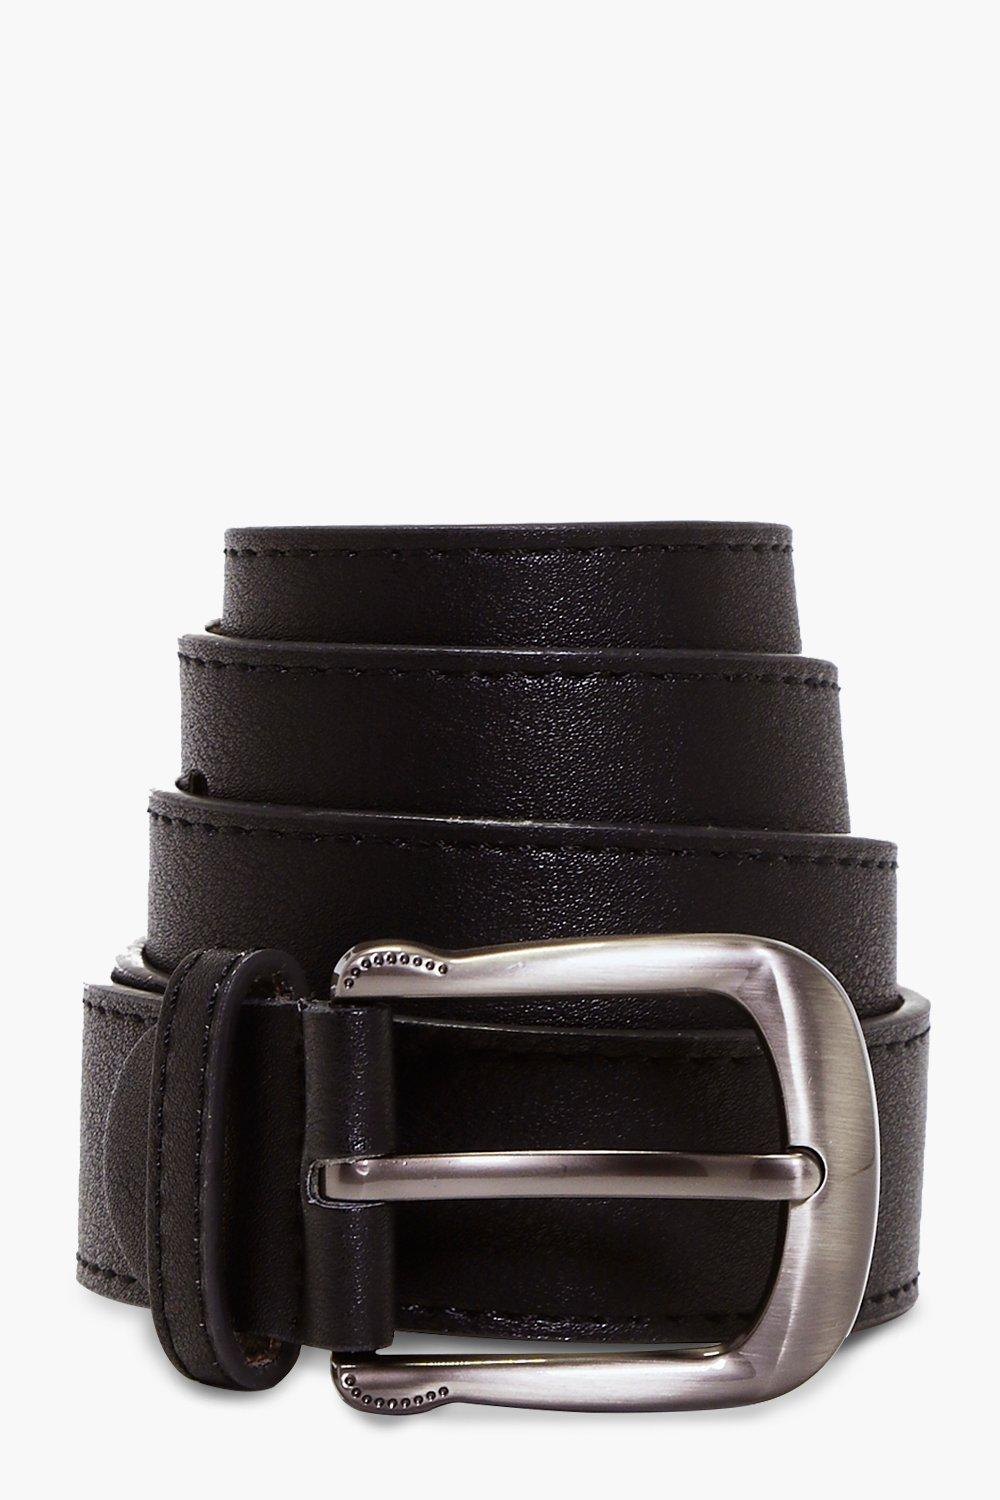 Curved Buckle Boyfriend Belt - black - Customise y